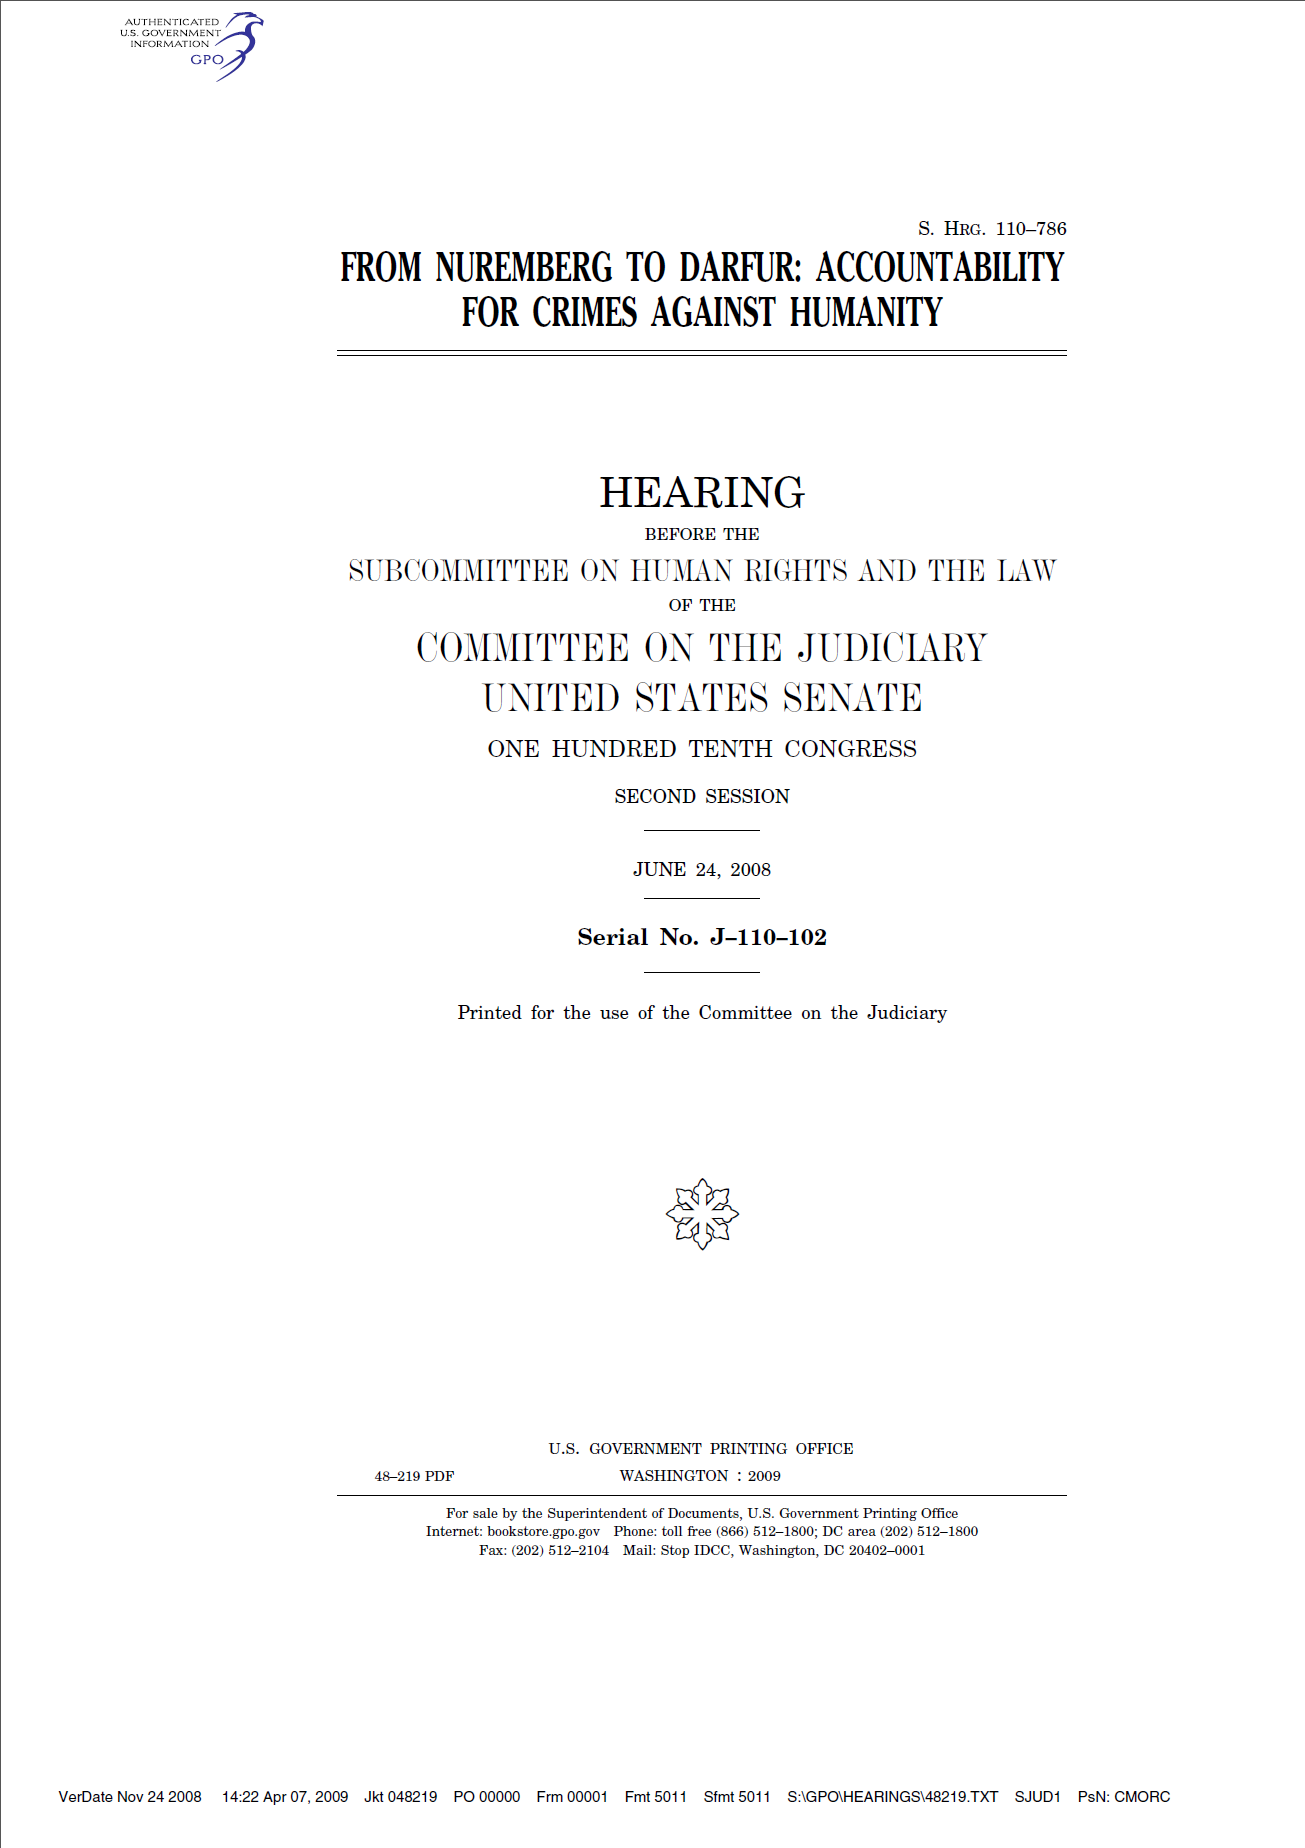 """""""From Nuremberg to Darfur: Accountability for Crimes Against Humanity"""" is a Senate document published in 2008 that provides detailed information on the Nuremberg trials. Although this is an official document of the U.S. Government, it is not a first-hand account of the Nuremberg trials and not a primary source."""